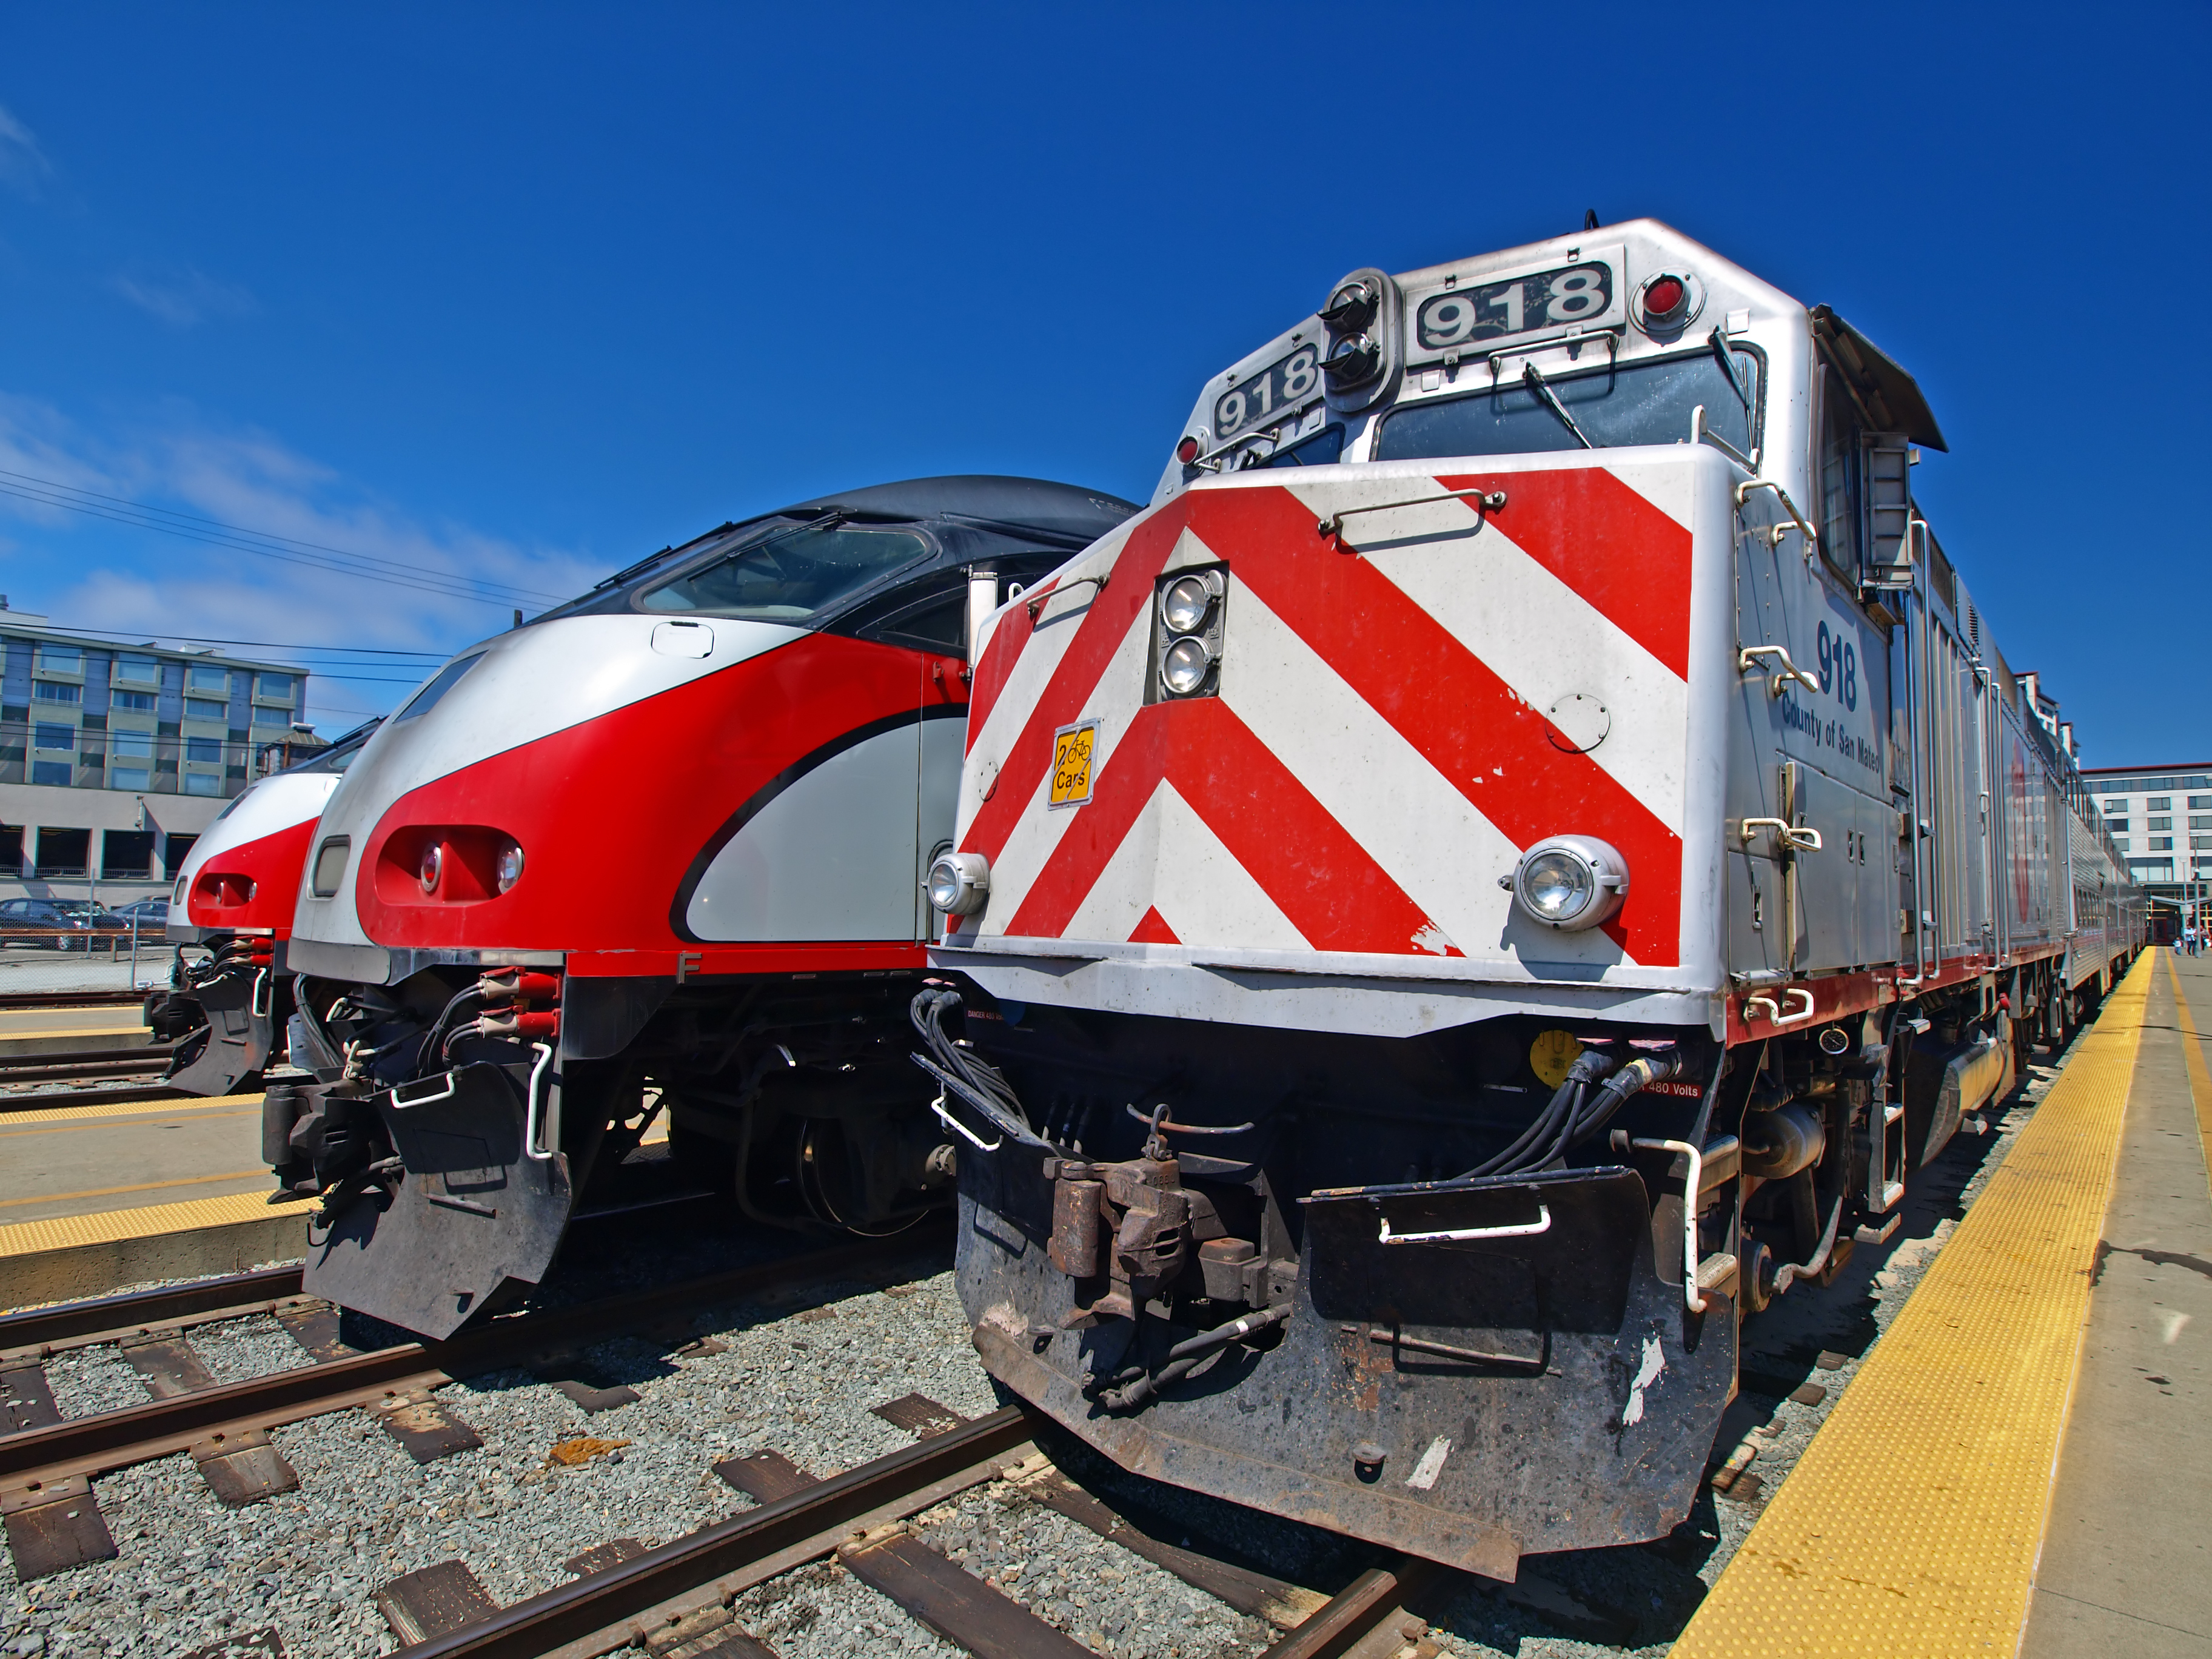 caltrains on the track